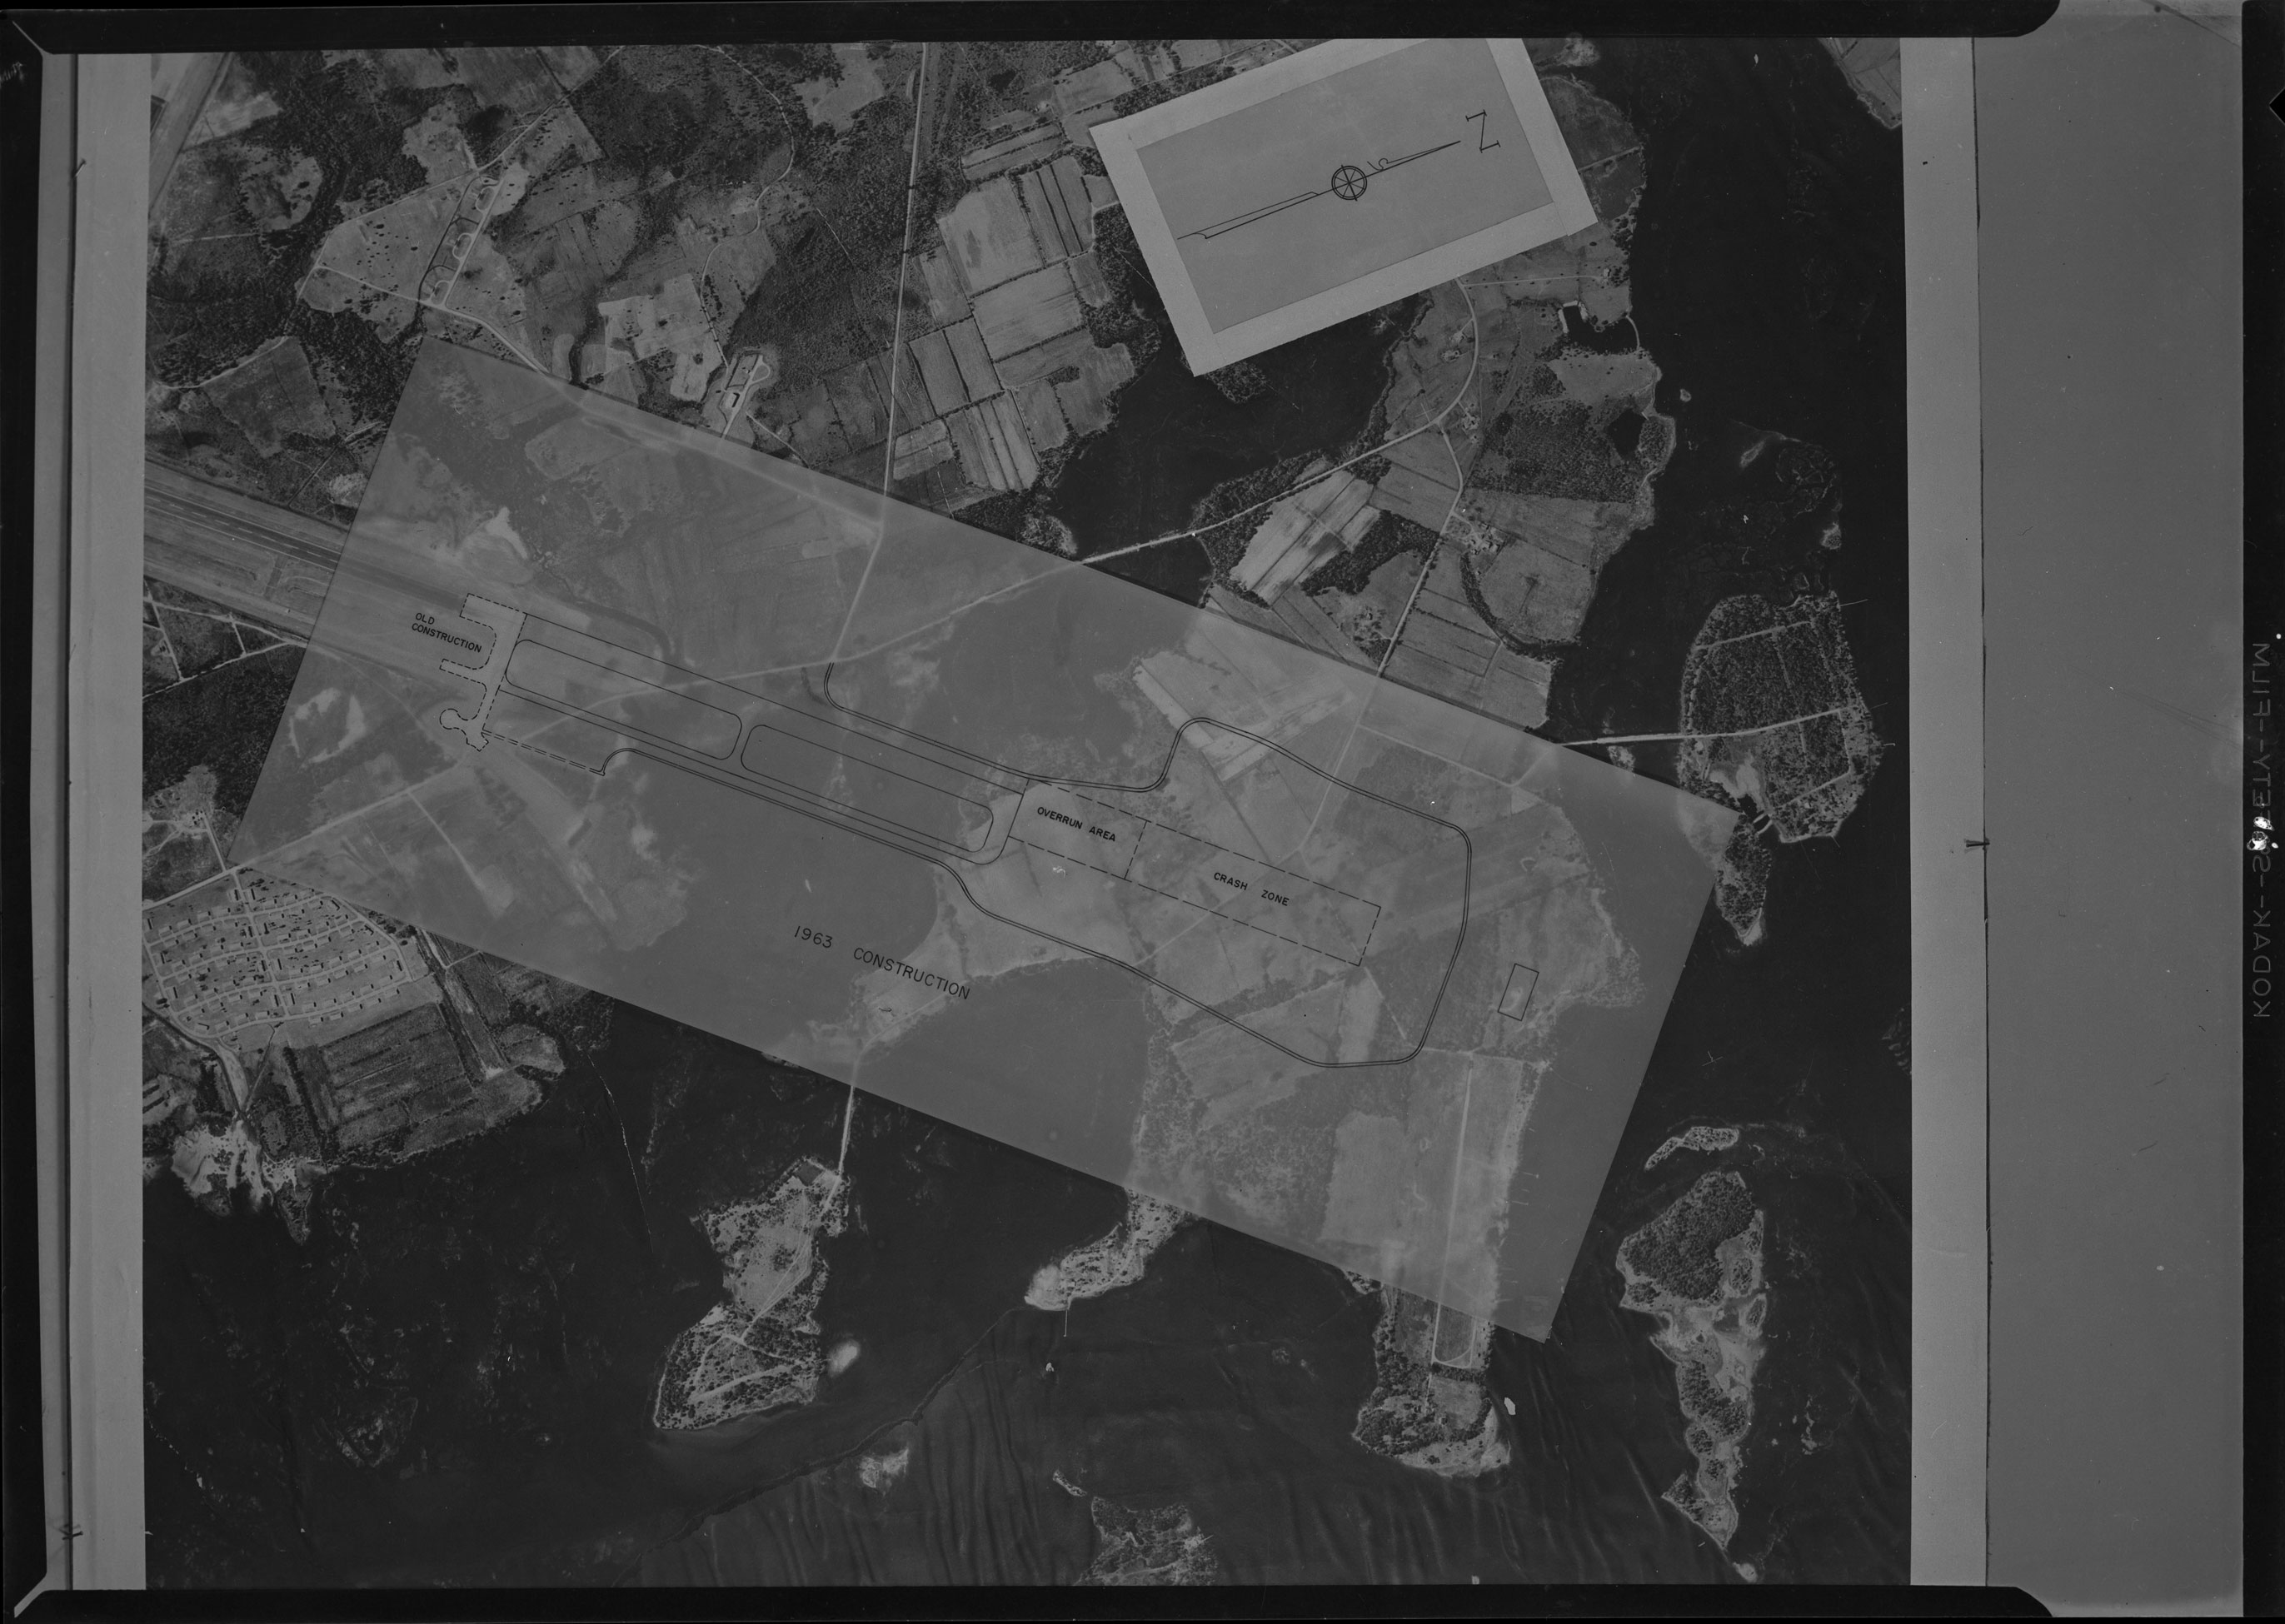 Aerial image of Marine Corps Air Station with plan of 1963 Construction landing strip overlaid